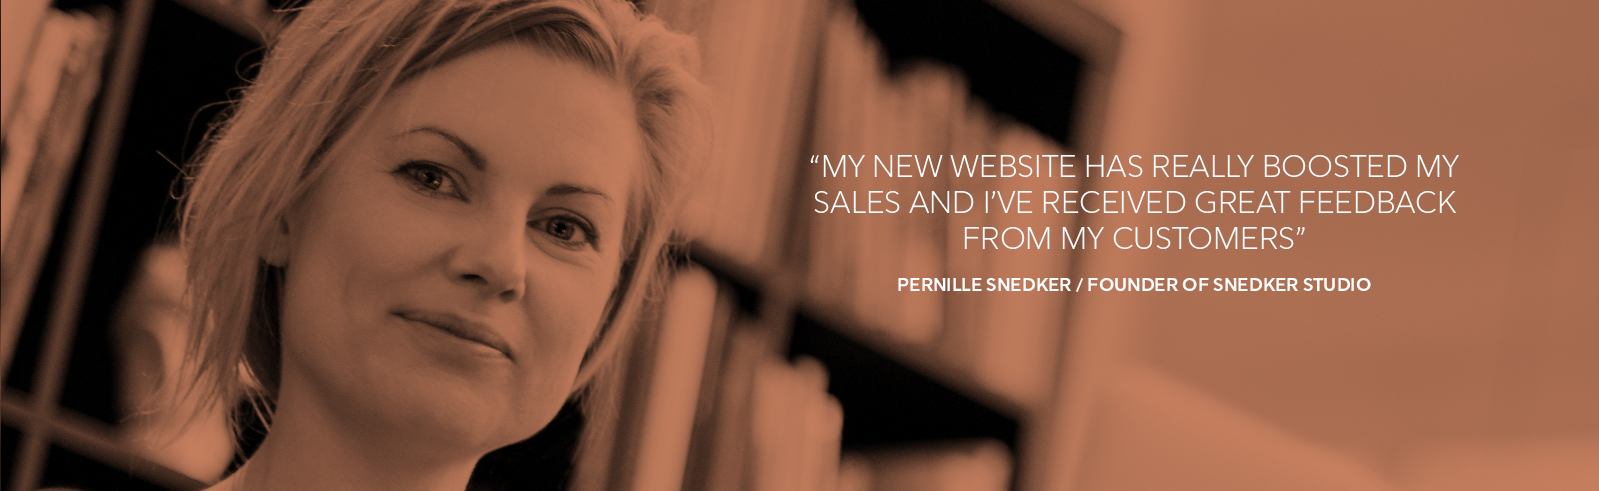 Pernille snedker, founder of snedker studio, snedker studio, best website builder, SMB, website